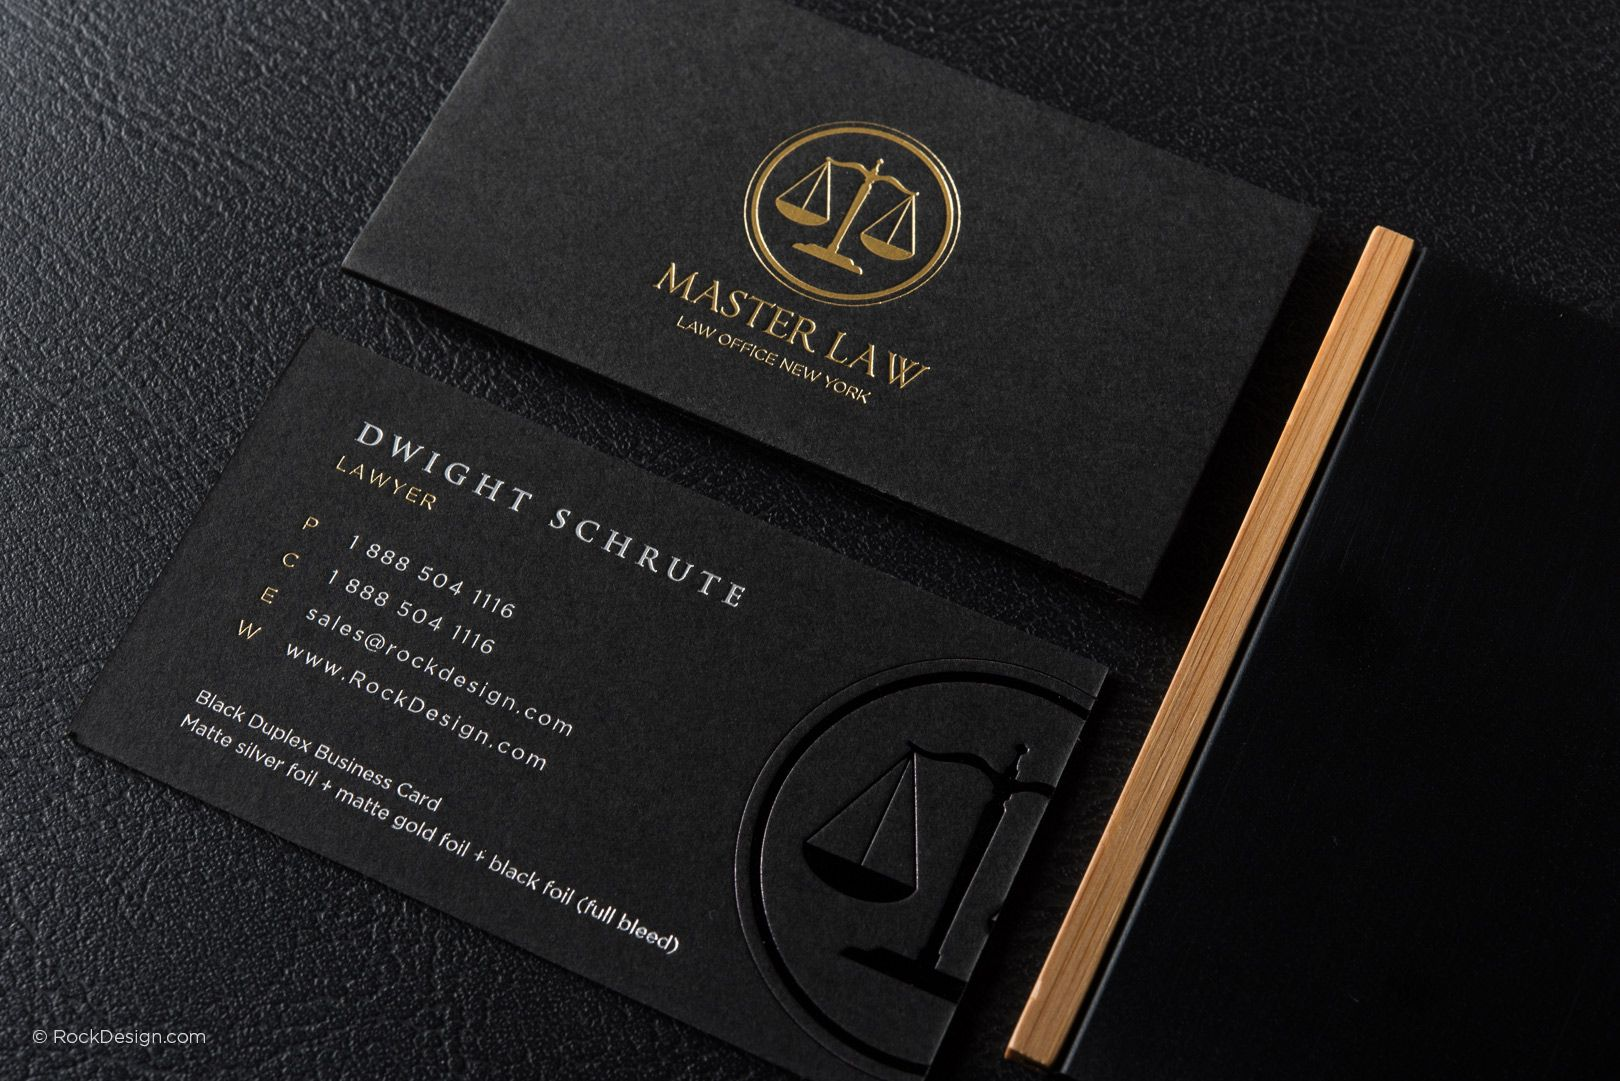 Classic modern black duplex attorney business card template master use our free luxury templates to create your visit cards today buy gold and black business cards online today to expand your law business reheart Gallery